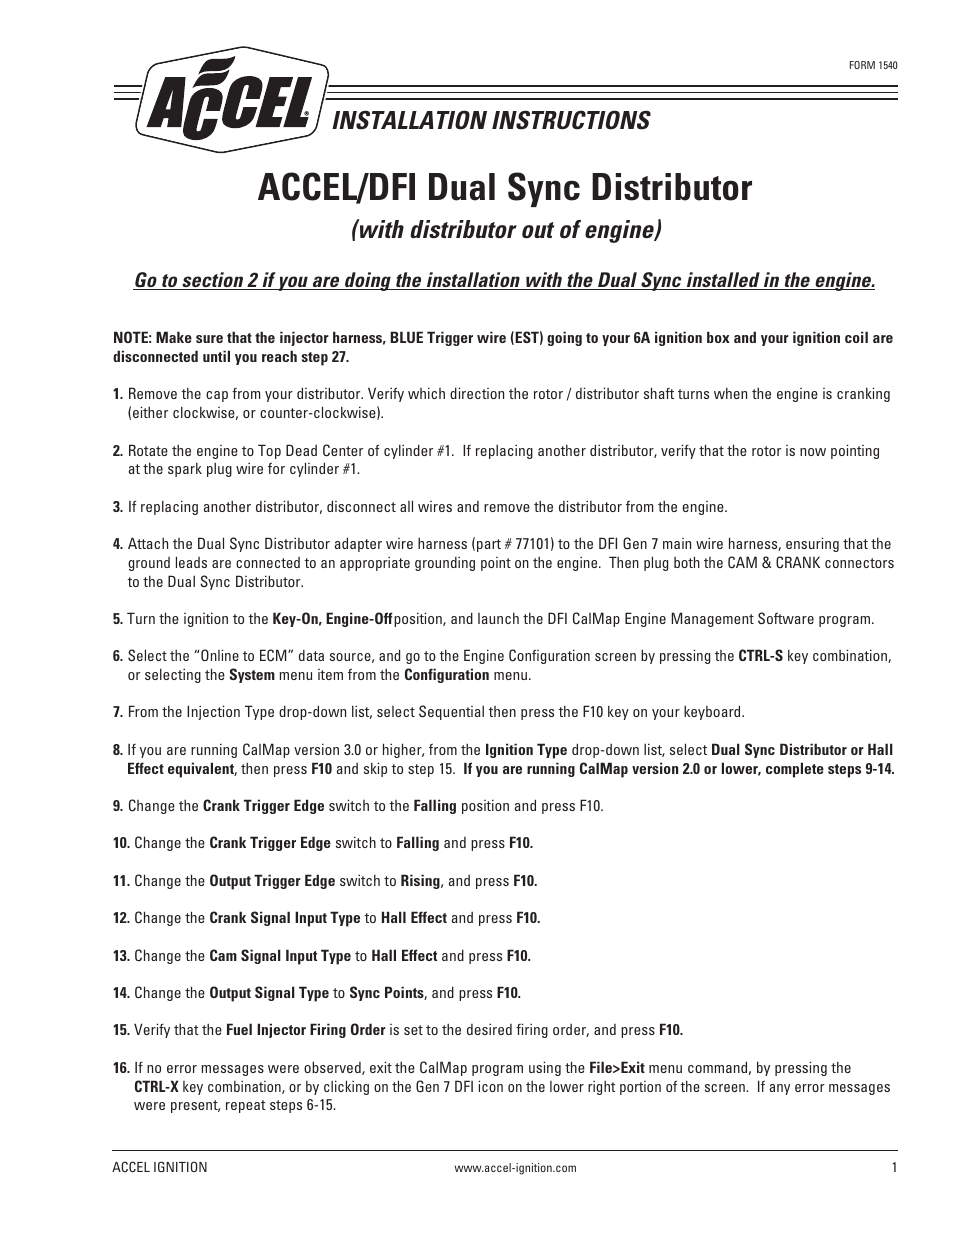 accel dual point ignition wiring diagram diagram schematics Chevy 350 Distributor  Wiring accel 59206 distributor wiring